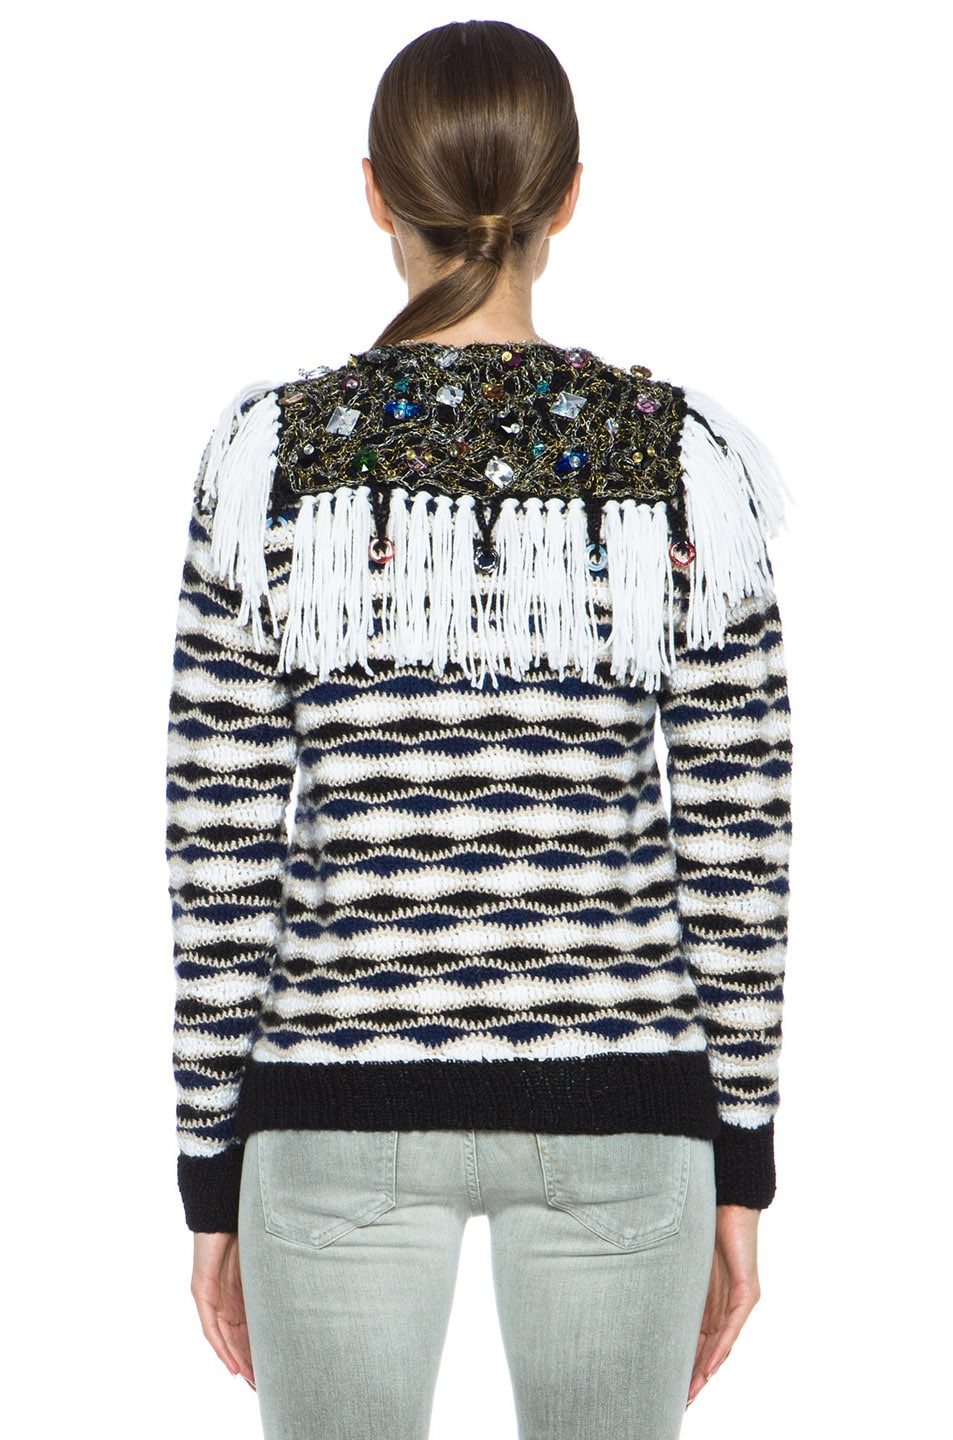 Image 4 of Rodarte Hand Crochet & Knit Sweater with Jeweled Collar in Black & White & Navy